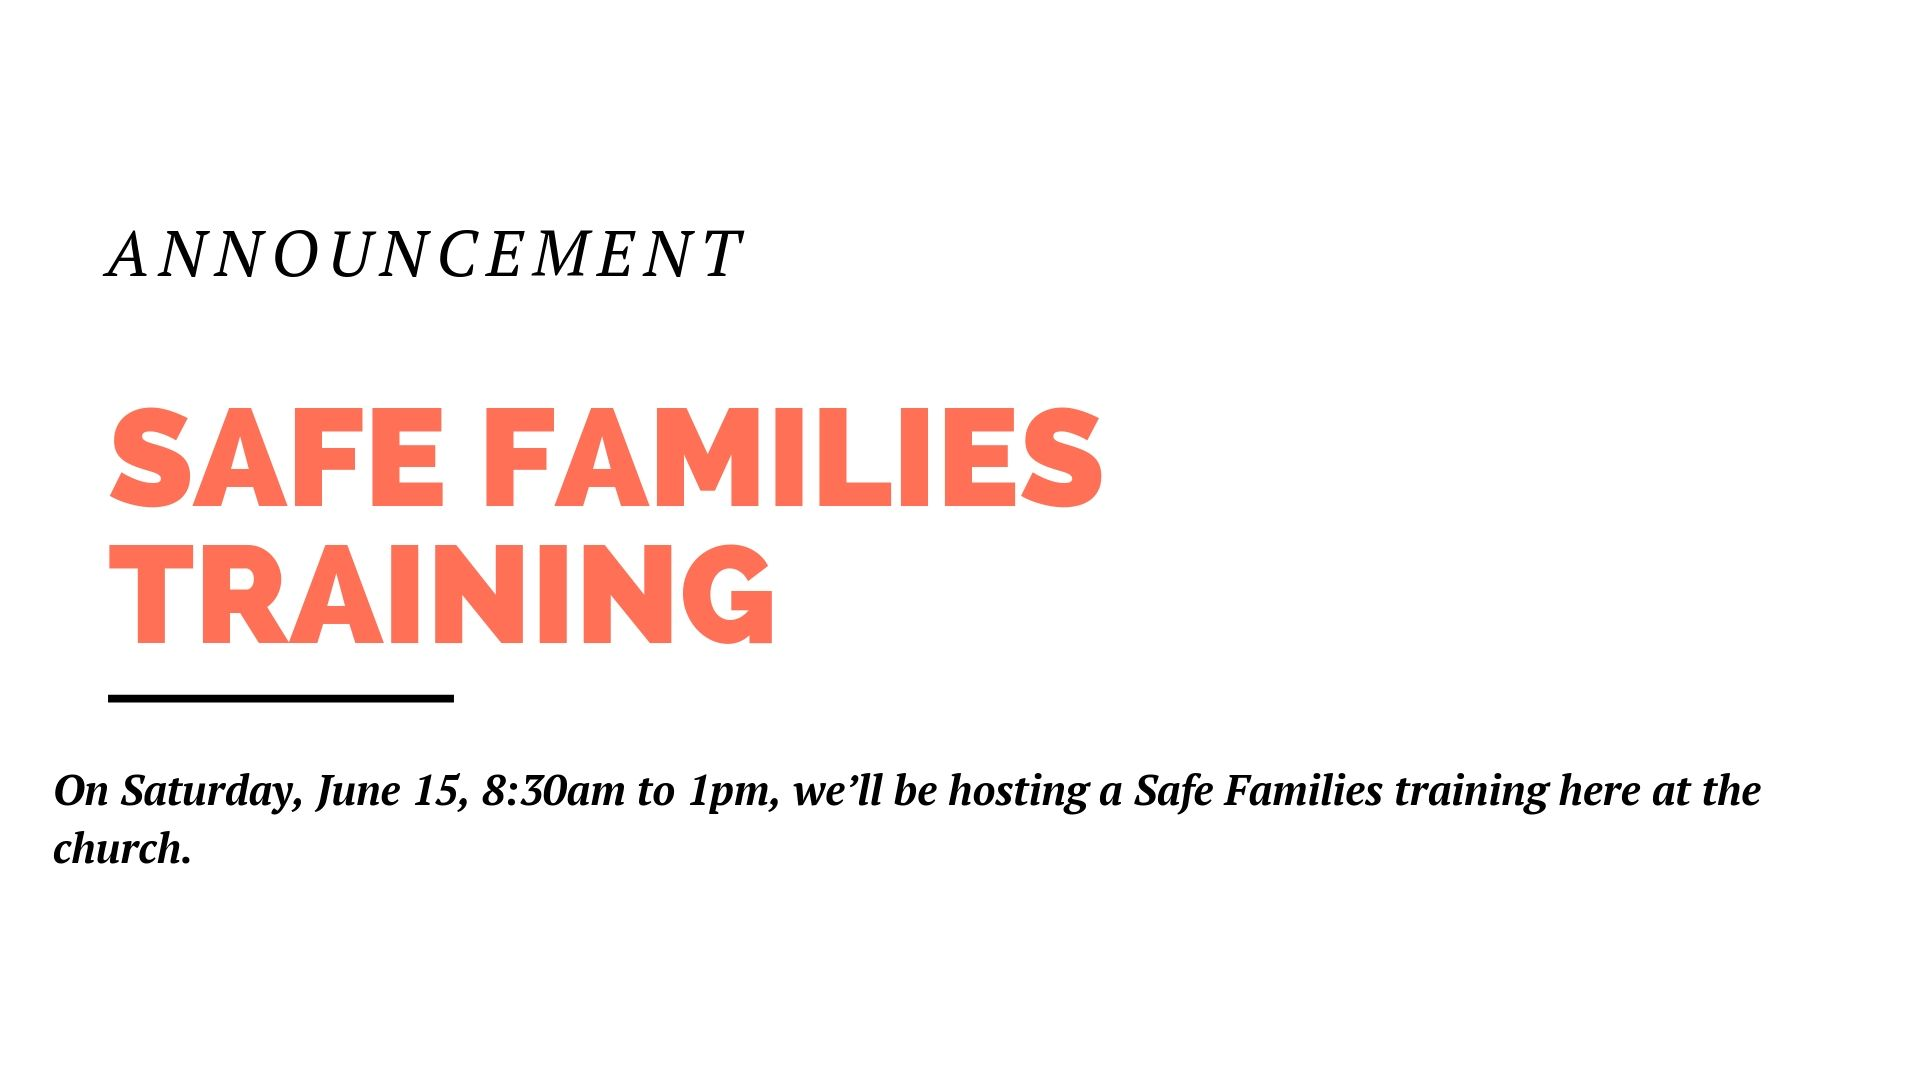 On Saturday, June 15, 8:30am to 1pm, we'll be hosting a Safe Families training at the church. This training is free and is for anyone interested in helping our church provide temporary homes for children in need. Even if you aren't able to host a child in your own home, there are lots of other ways to help out. So go to the church center app on your phone, register to attend, and let's care for the children of our city.